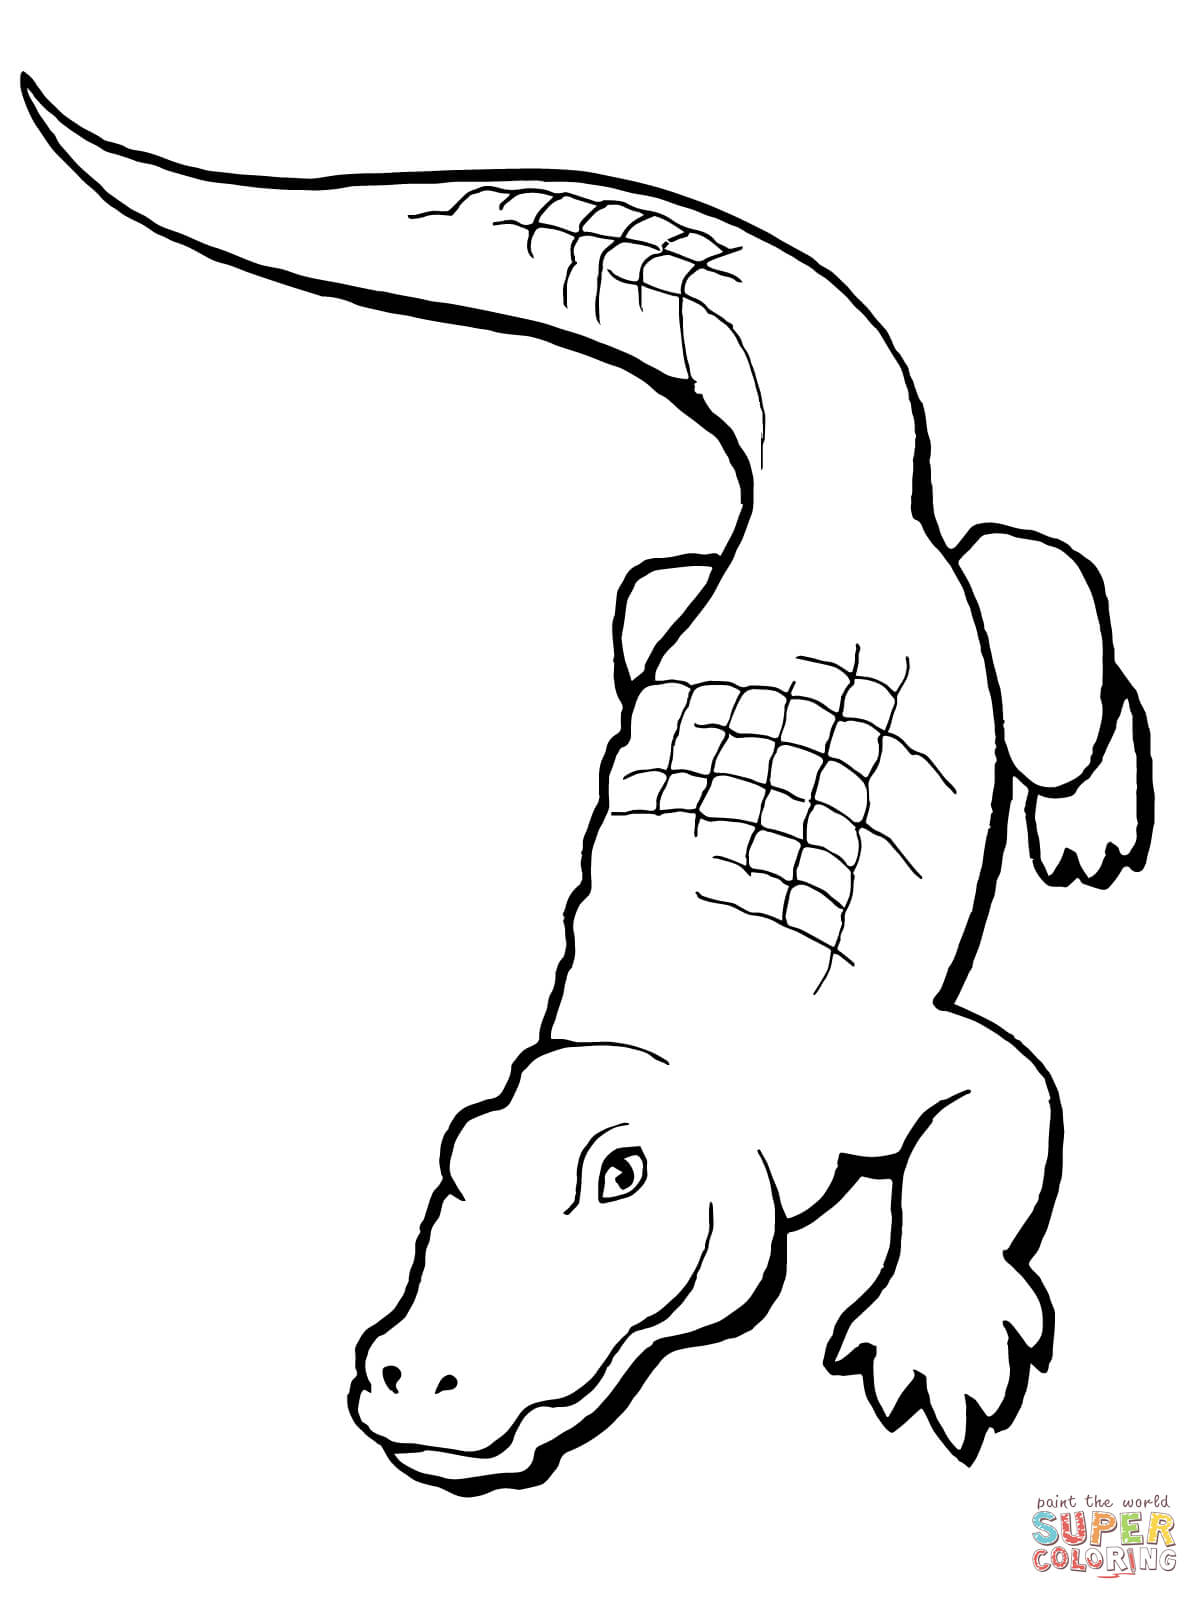 alligator drawing crocodile by clayjames on deviantart drawing alligator